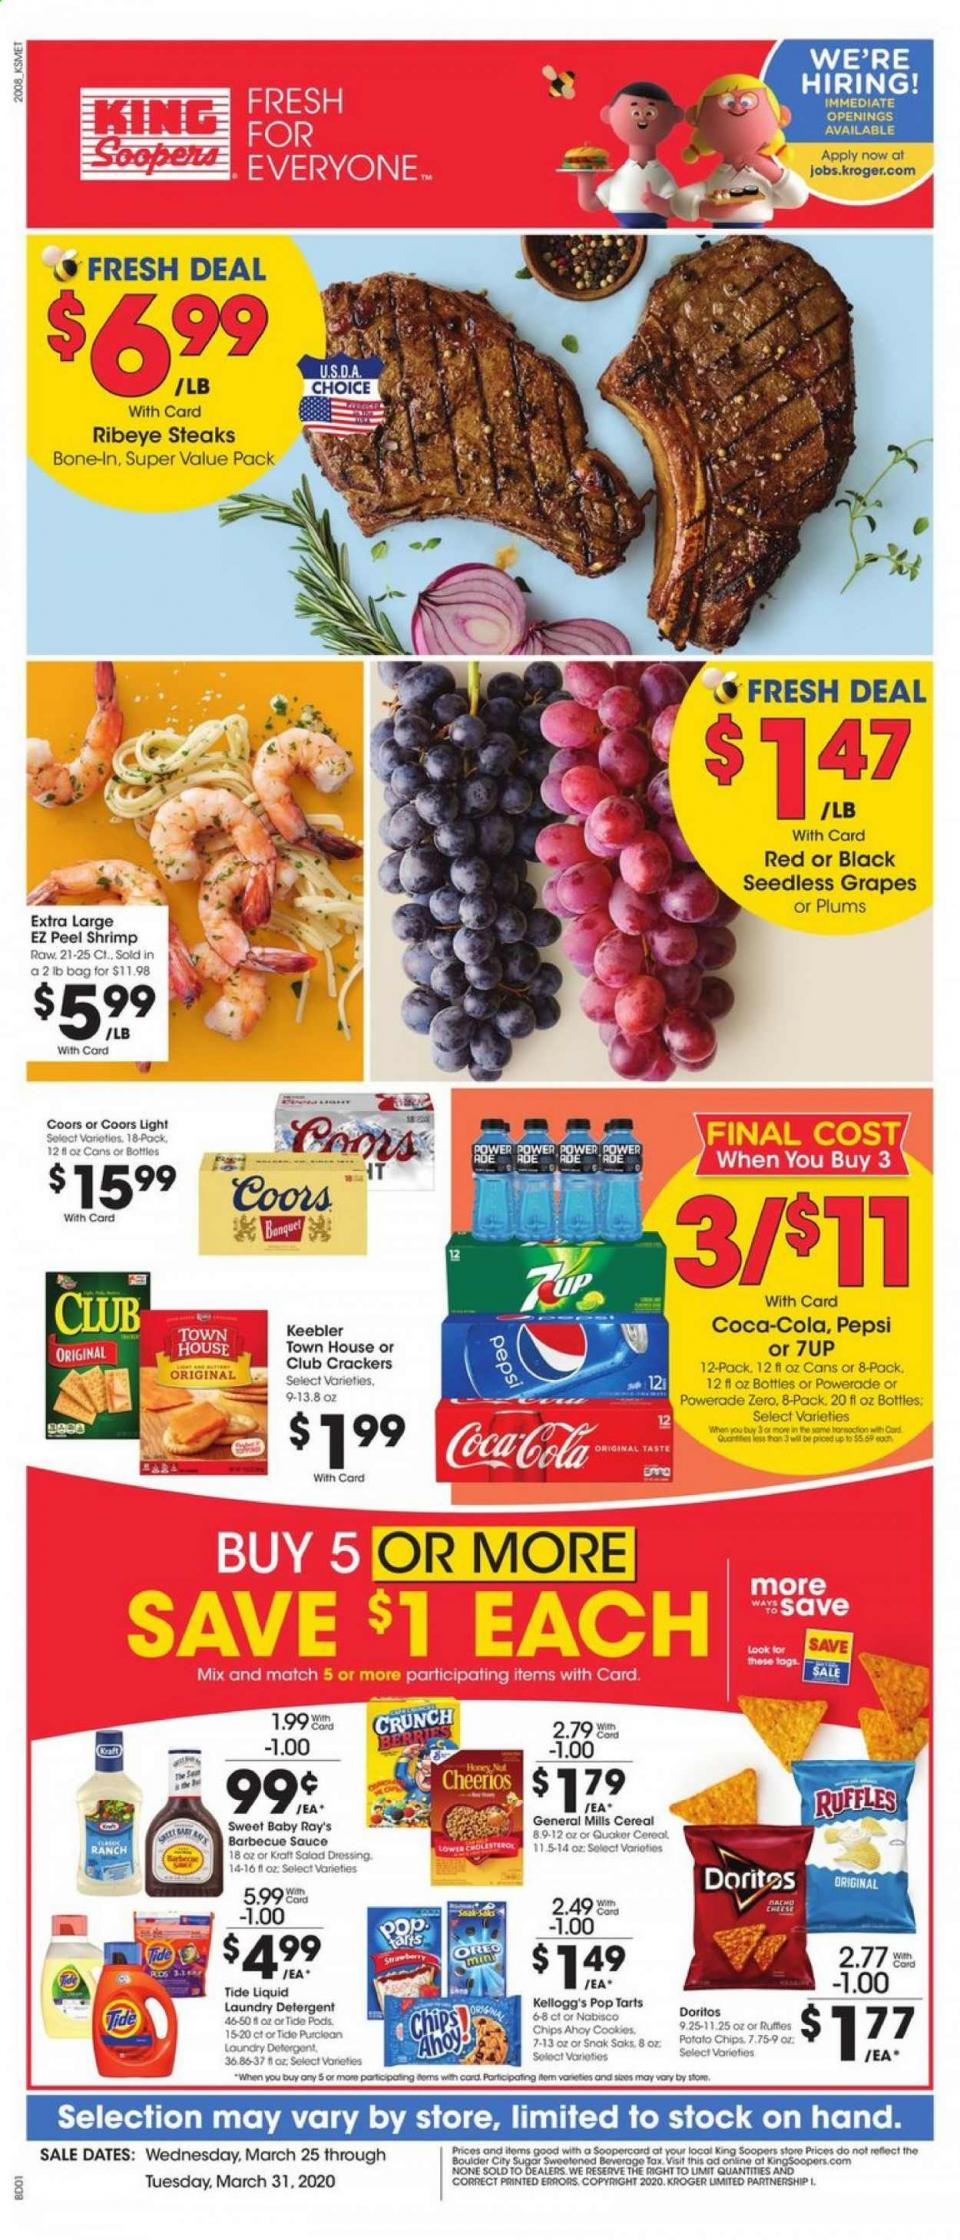 King Soopers Final March Weekly Ad valid from Mar 25 – 31, 2020